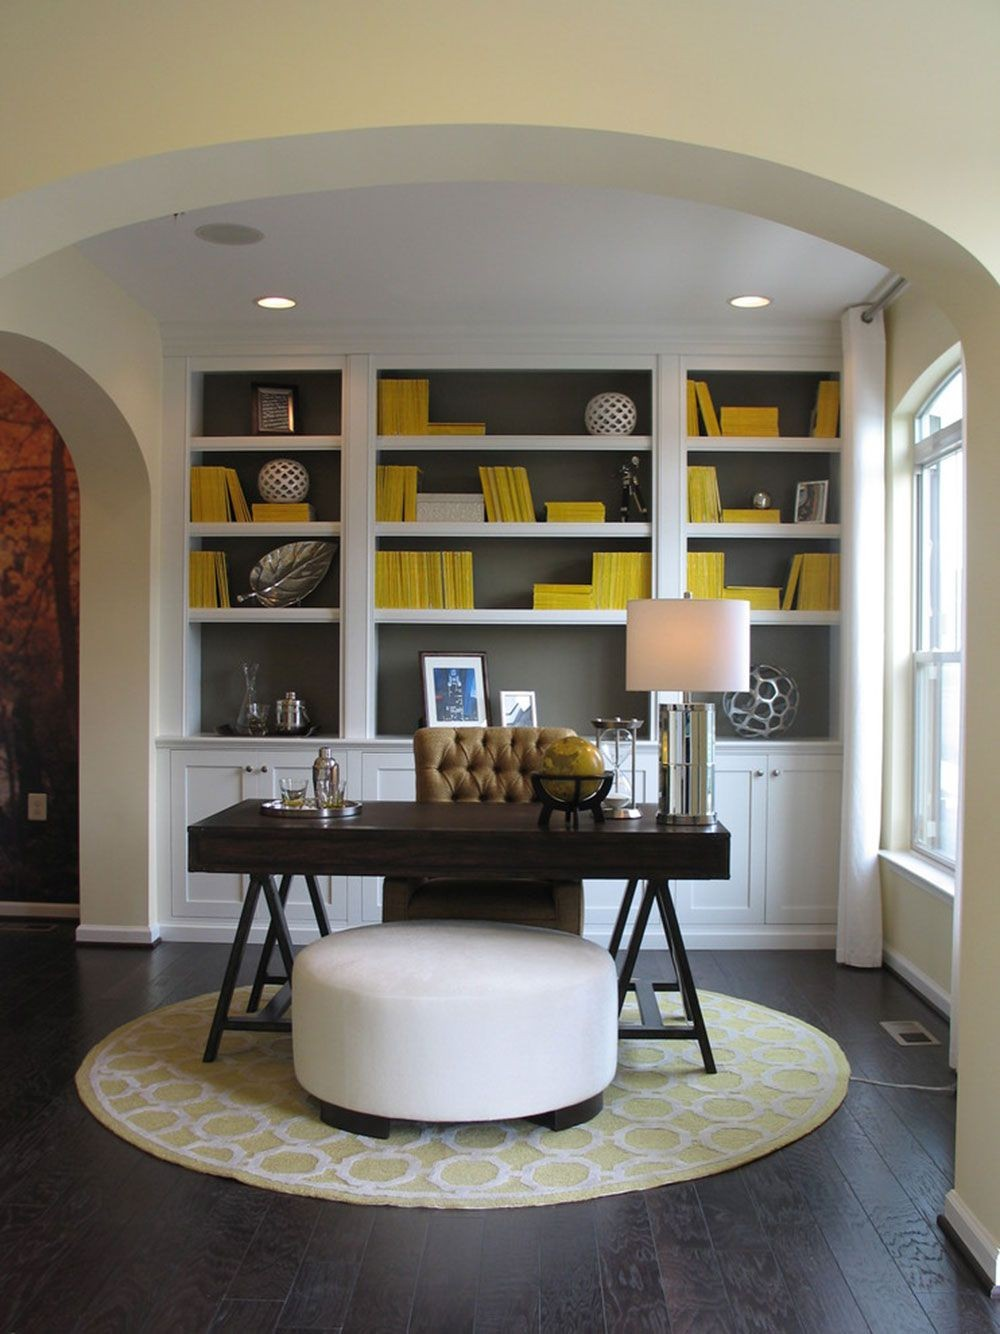 18 Awe-Inspiring Home Office Designs full of Colors and Textures 10 home office designs 17 Awe-Inspiring Home Office Designs full of Colors and Textures 18 Awe Inspiring Home Office Designs full of Colors and Textures 10